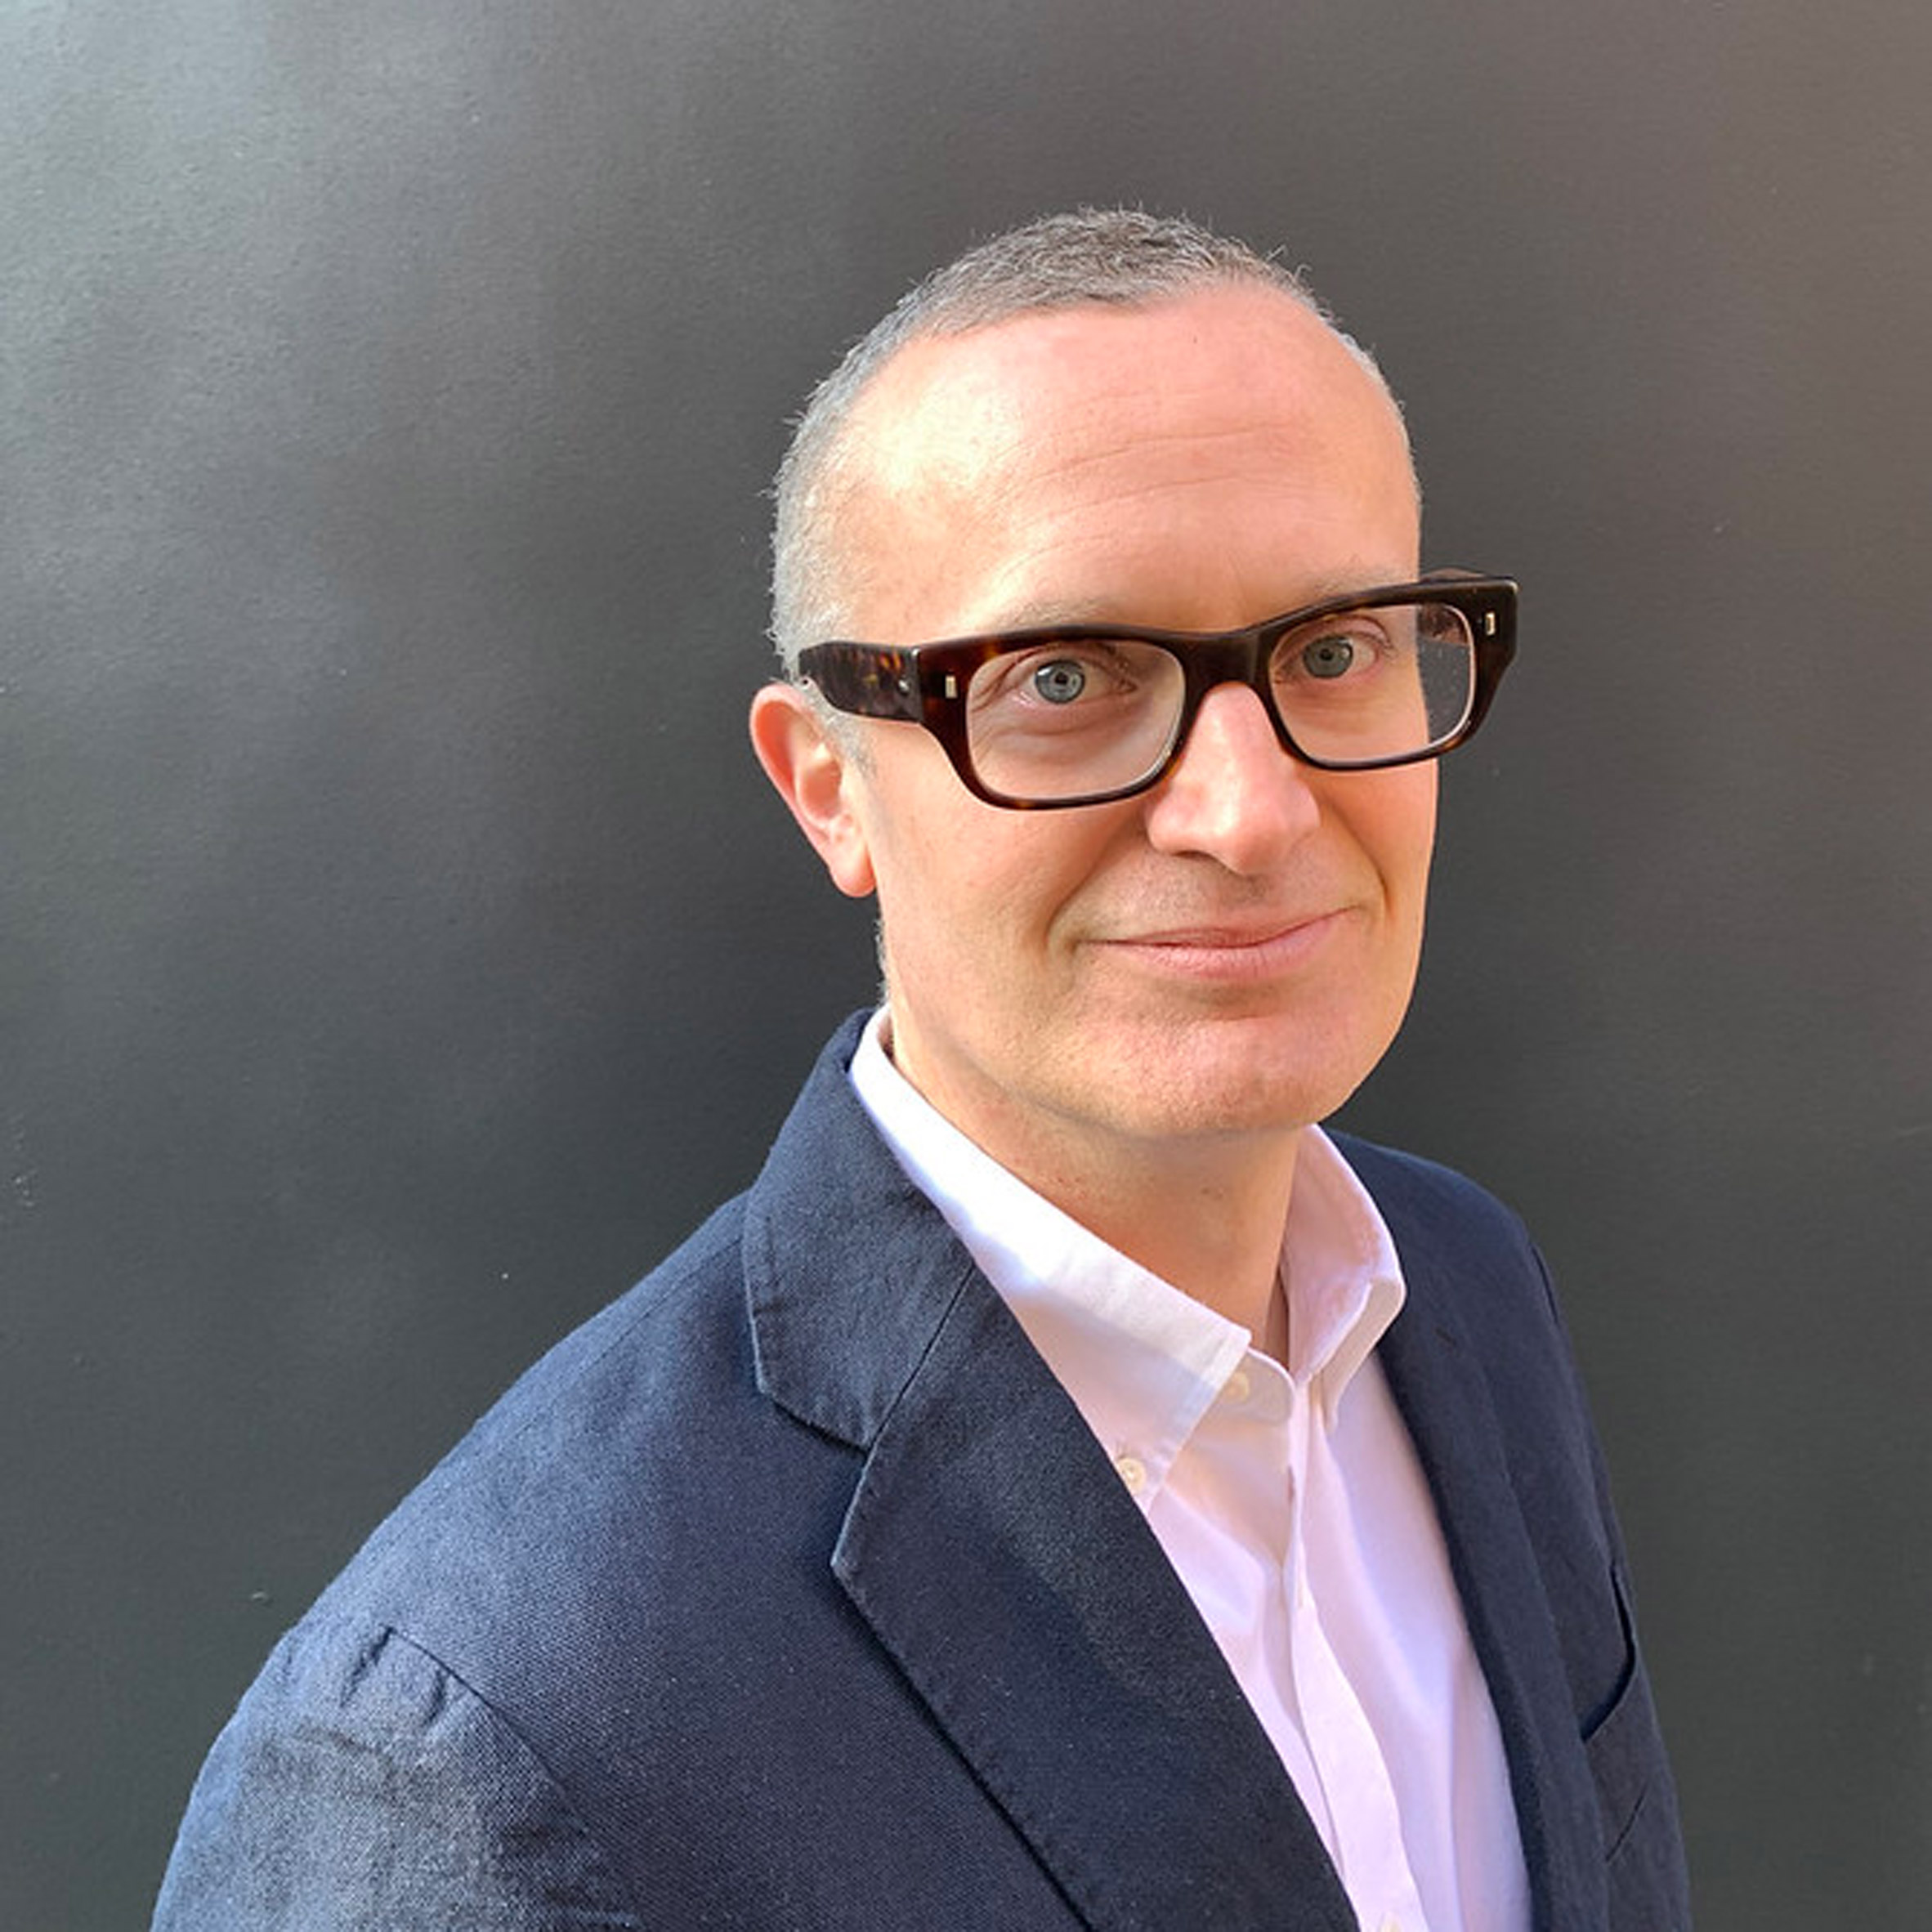 """""""I see too many people who look like me"""" in leadership positions says Ben Terrett as he declines D&AD presidency"""